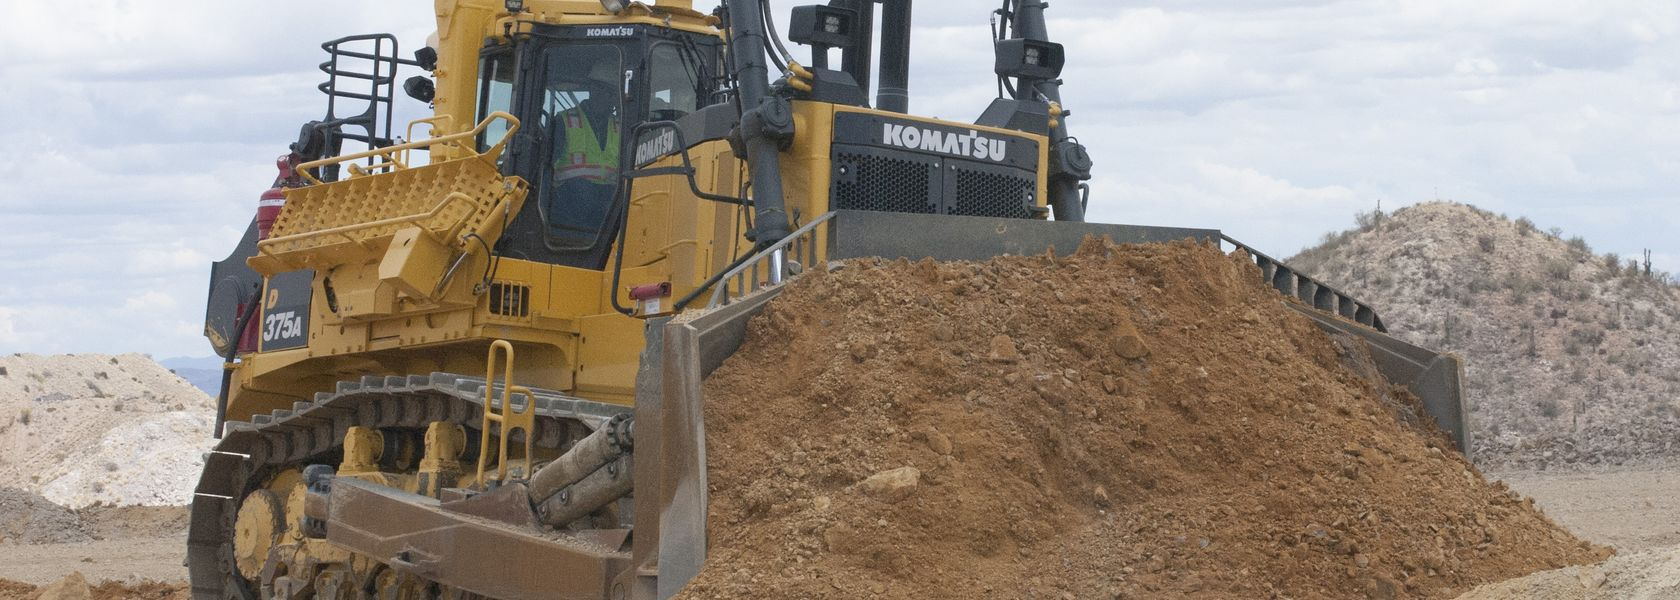 Introducing the Komatsu D375A-8